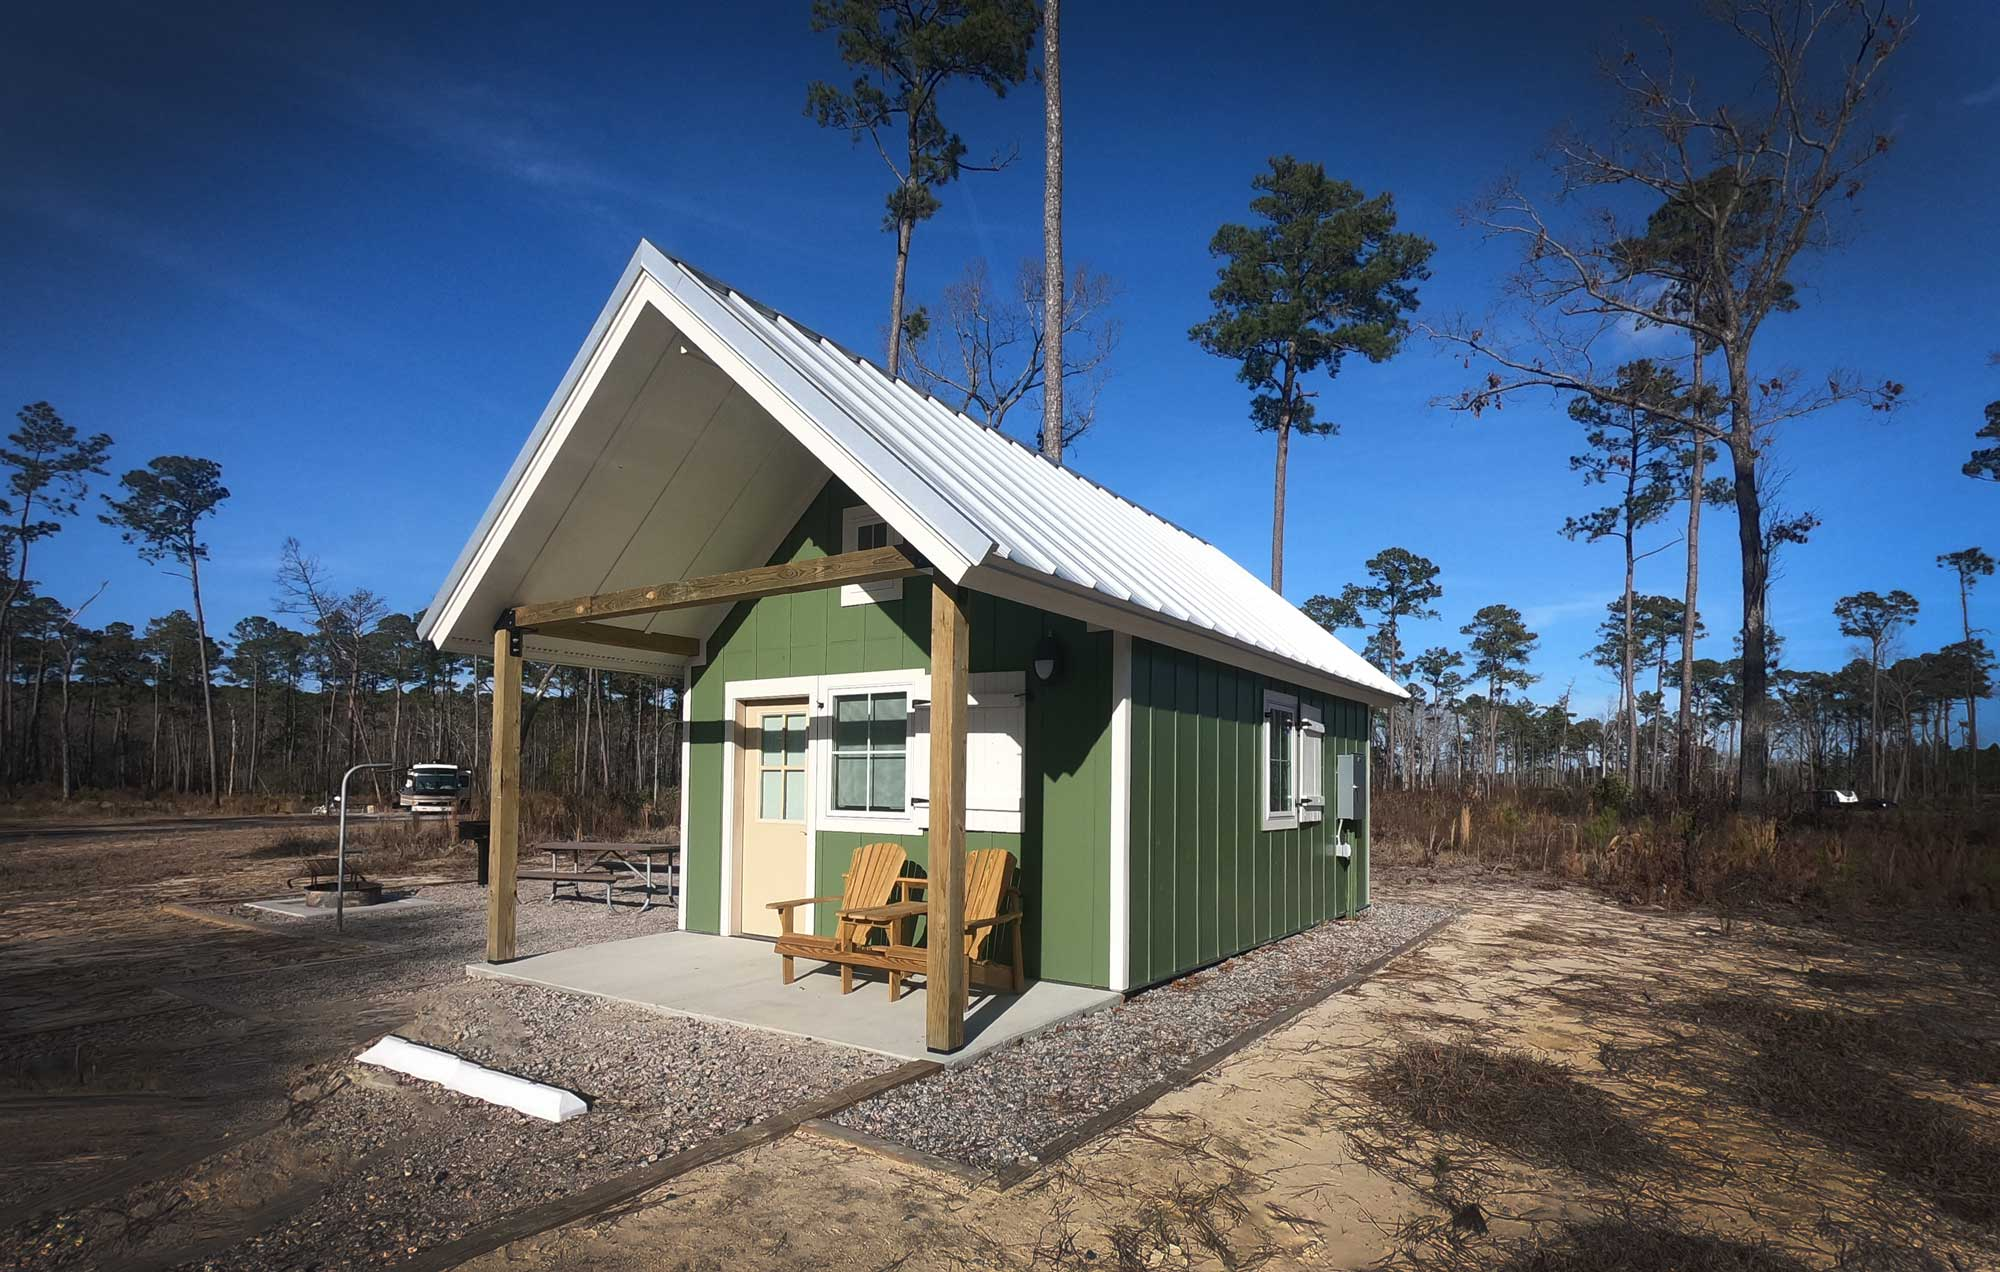 North Carolina's Goose Creek State Park green camping cabin with white metal roof and front porch tAdirondack chairs